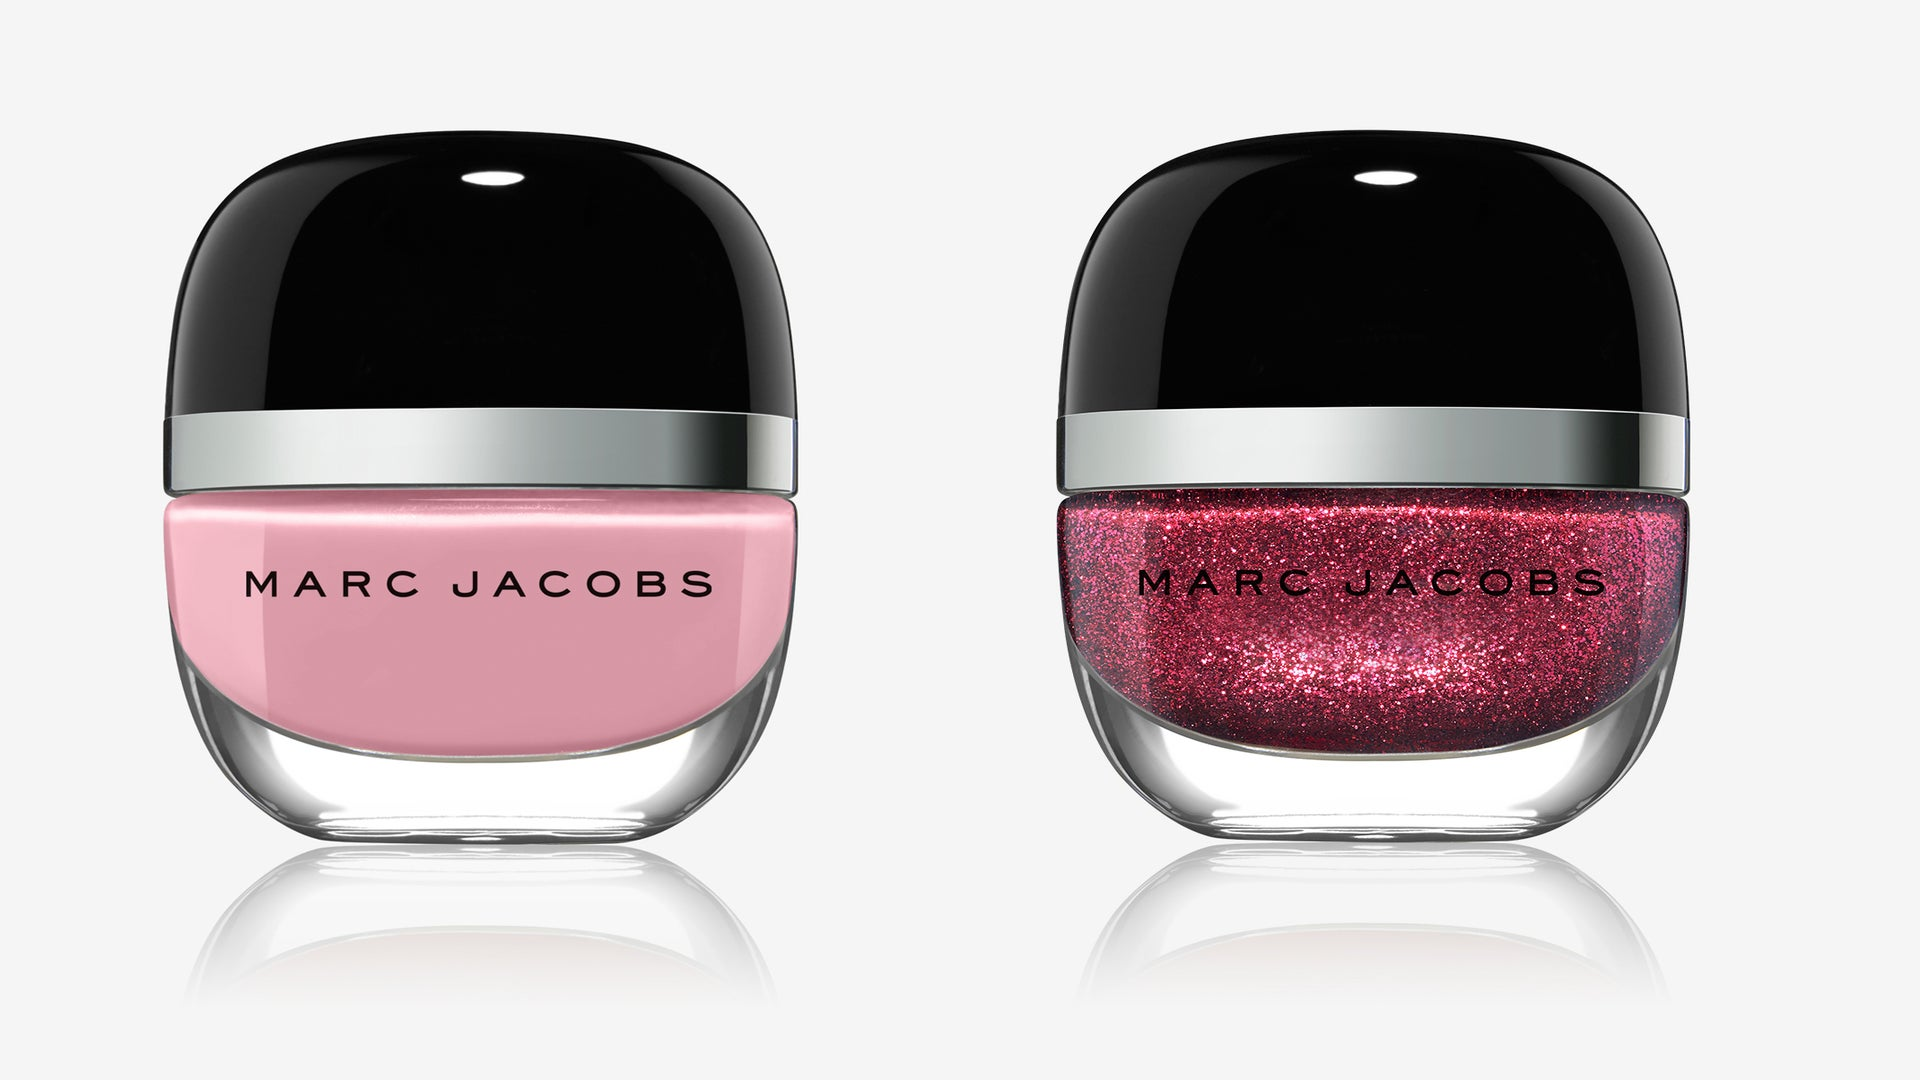 Marc Jacobs Nail Polish Is Buy One, Get One Half Price – So Here Are 5 Awesome Color Combos to Try